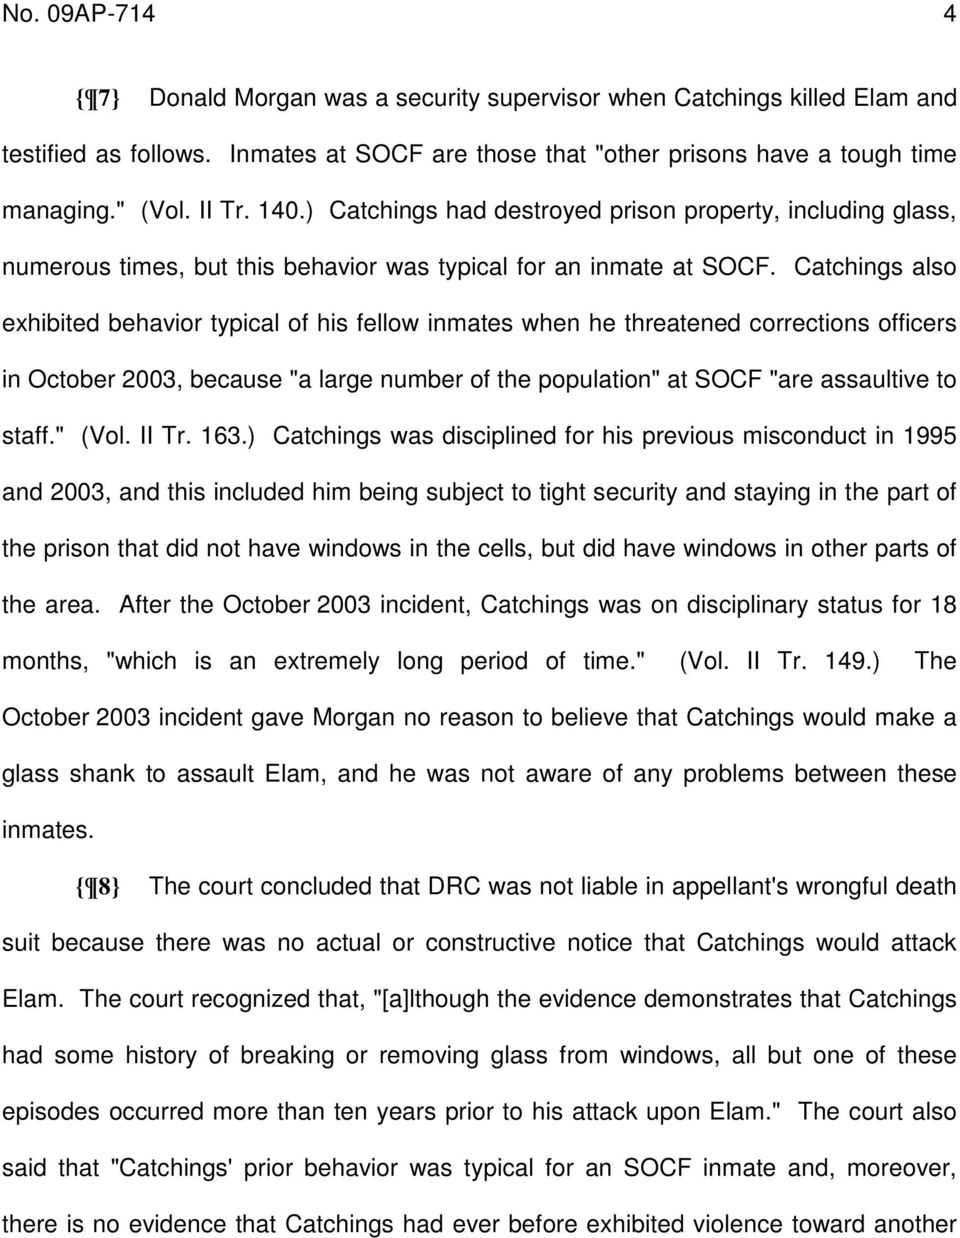 "Catchings also exhibited behavior typical of his fellow inmates when he threatened corrections officers in October 2003, because ""a large number of the population"" at SOCF ""are assaultive to staff."